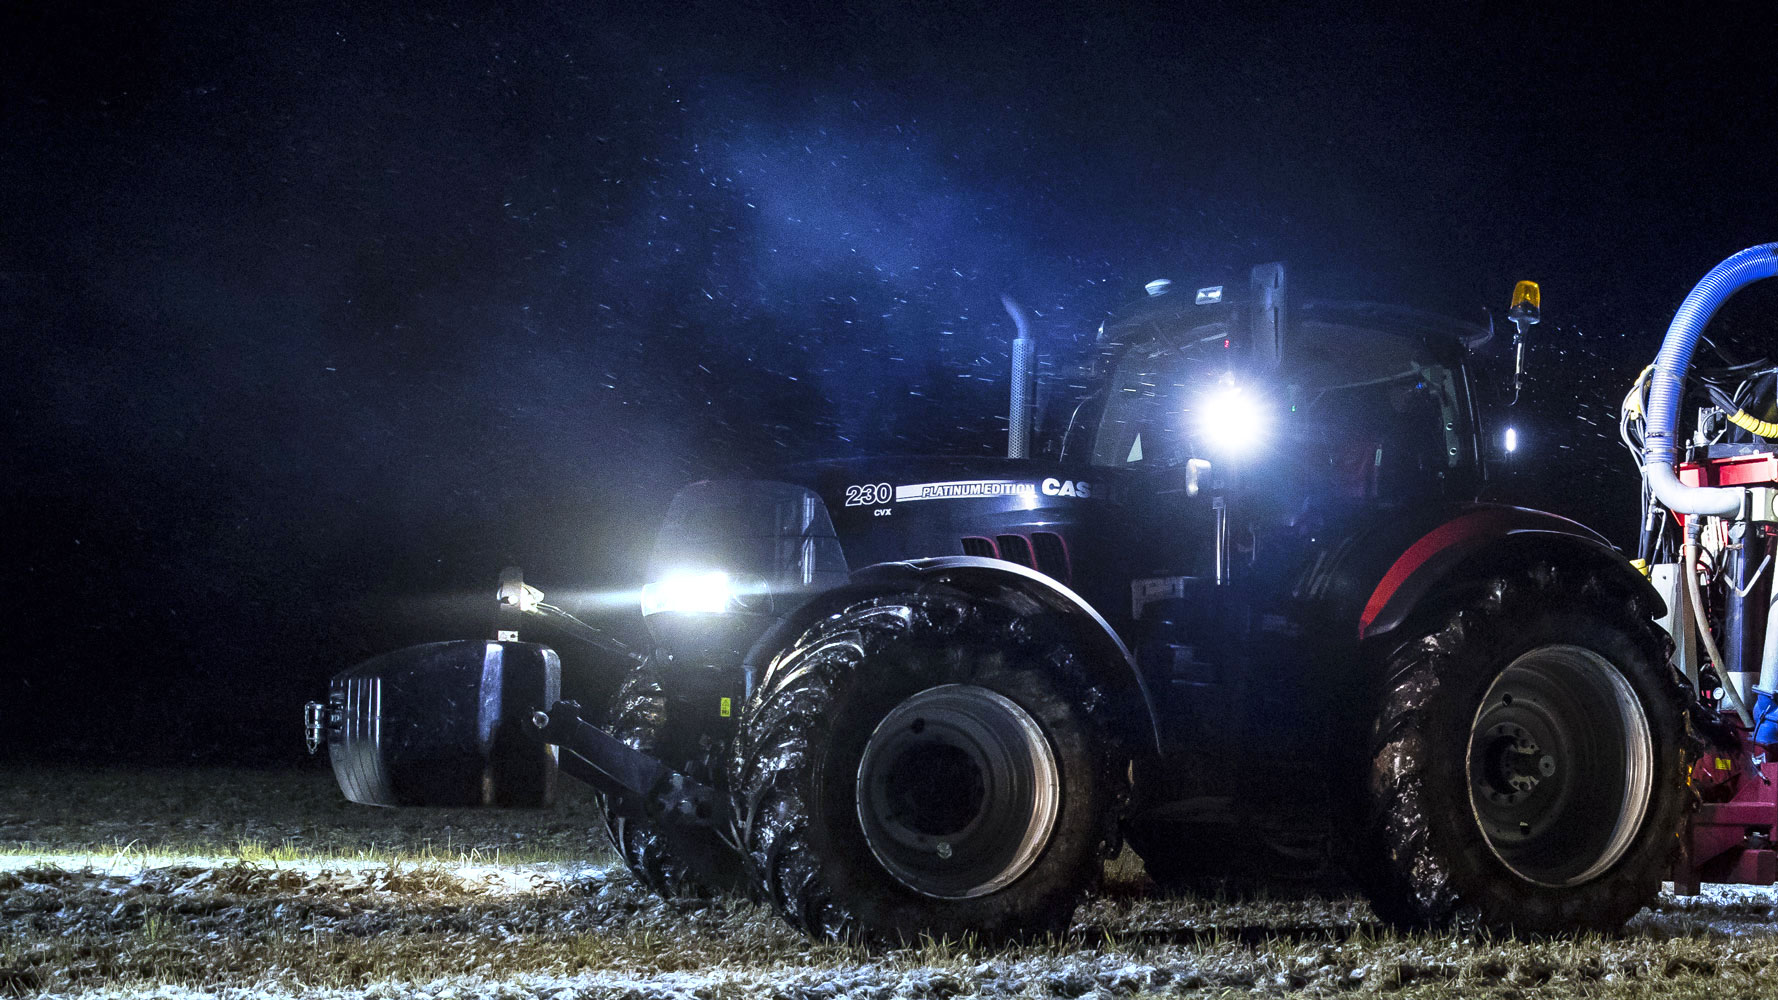 Nordic Lights LED lights mounted on tractor working on field